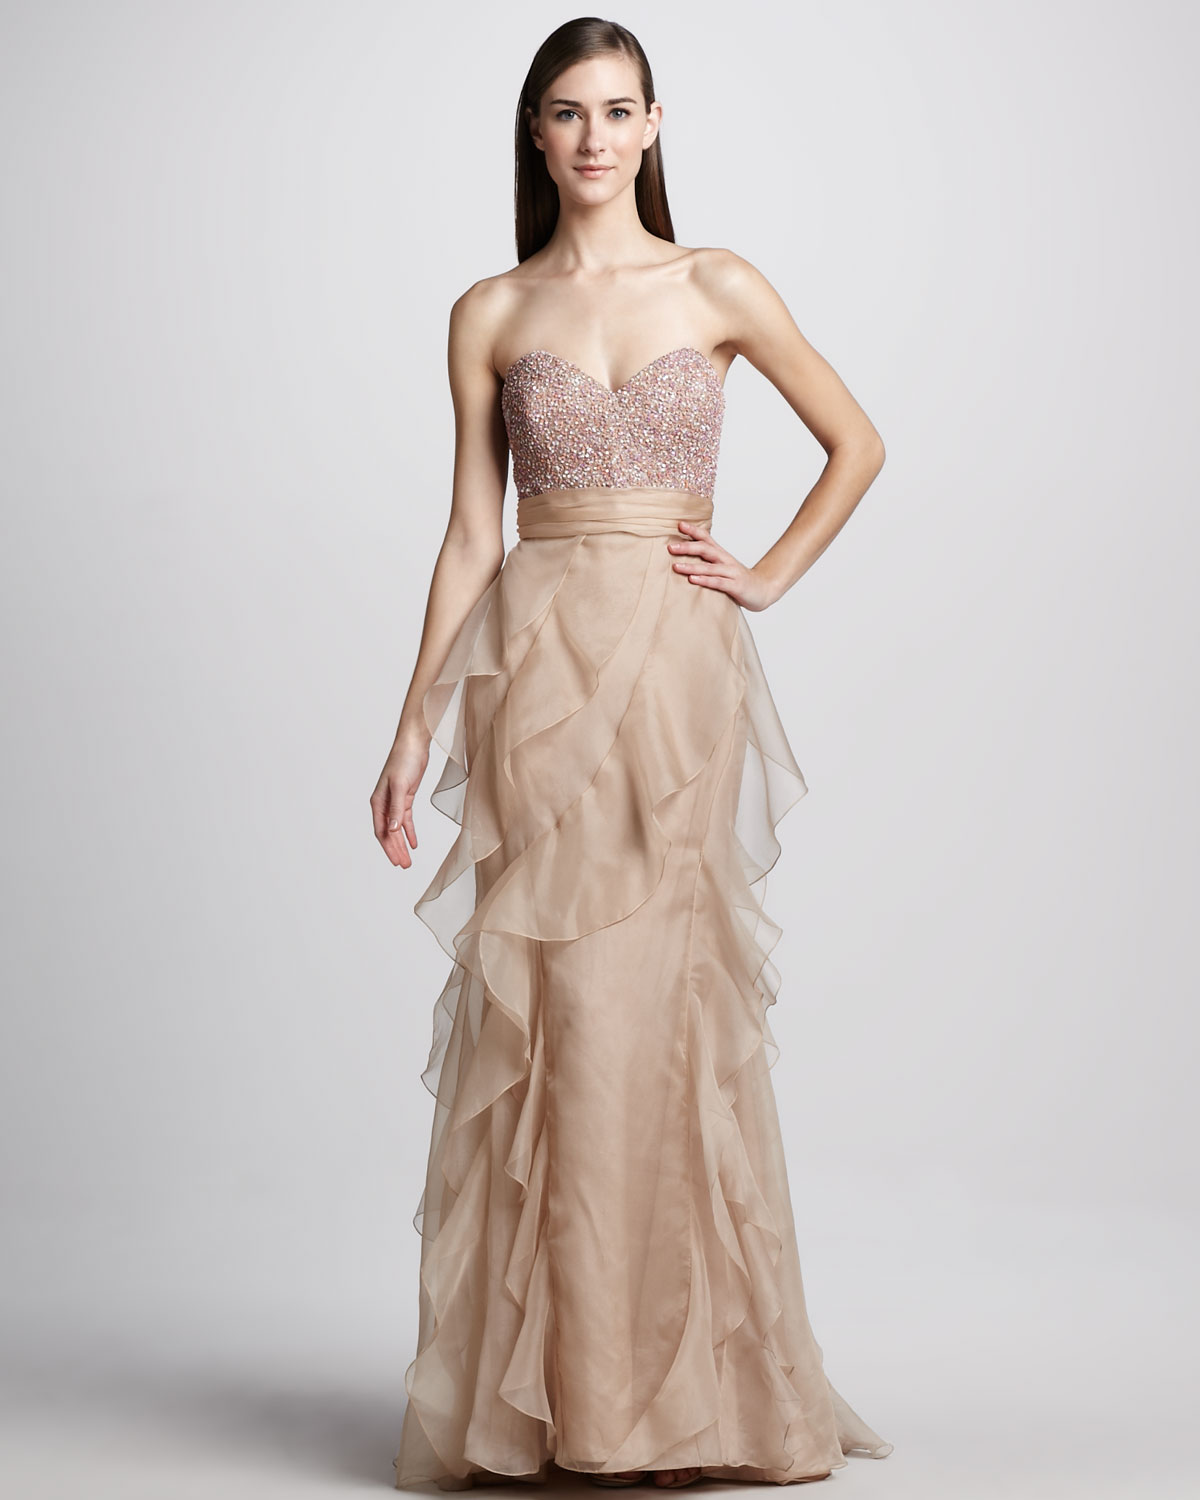 Badgley mischka strapless beadtop ruffled gown in natural lyst gallery previously sold at neiman marcus ombrellifo Choice Image